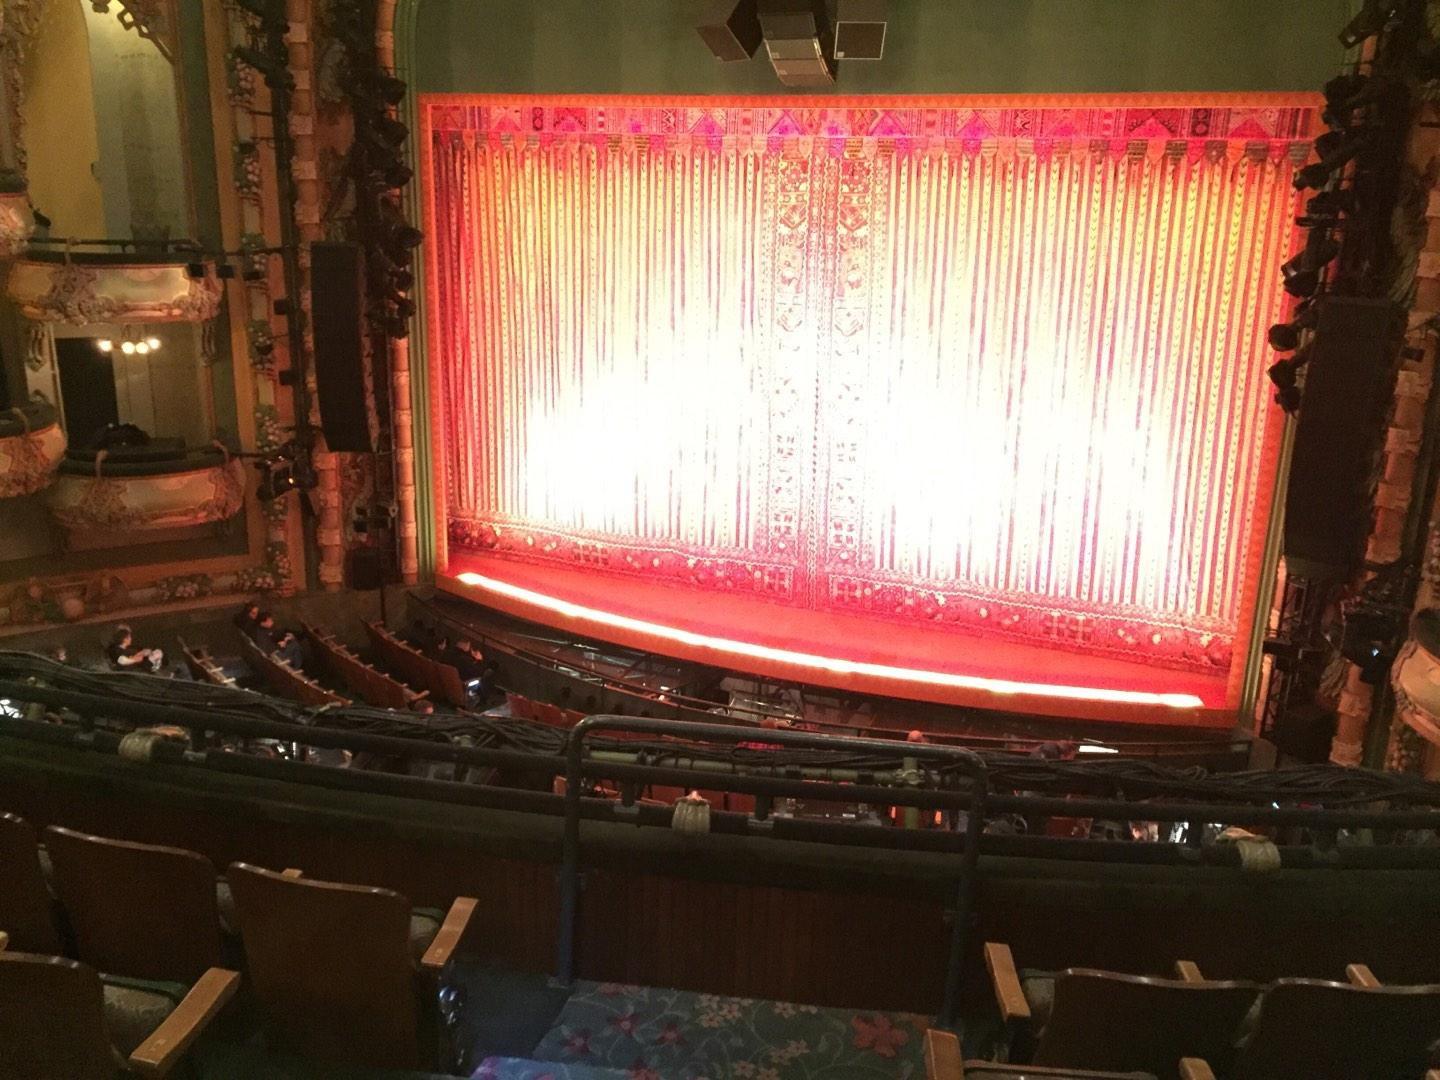 New Amsterdam Theatre Section Mezz Row DD Seat 4